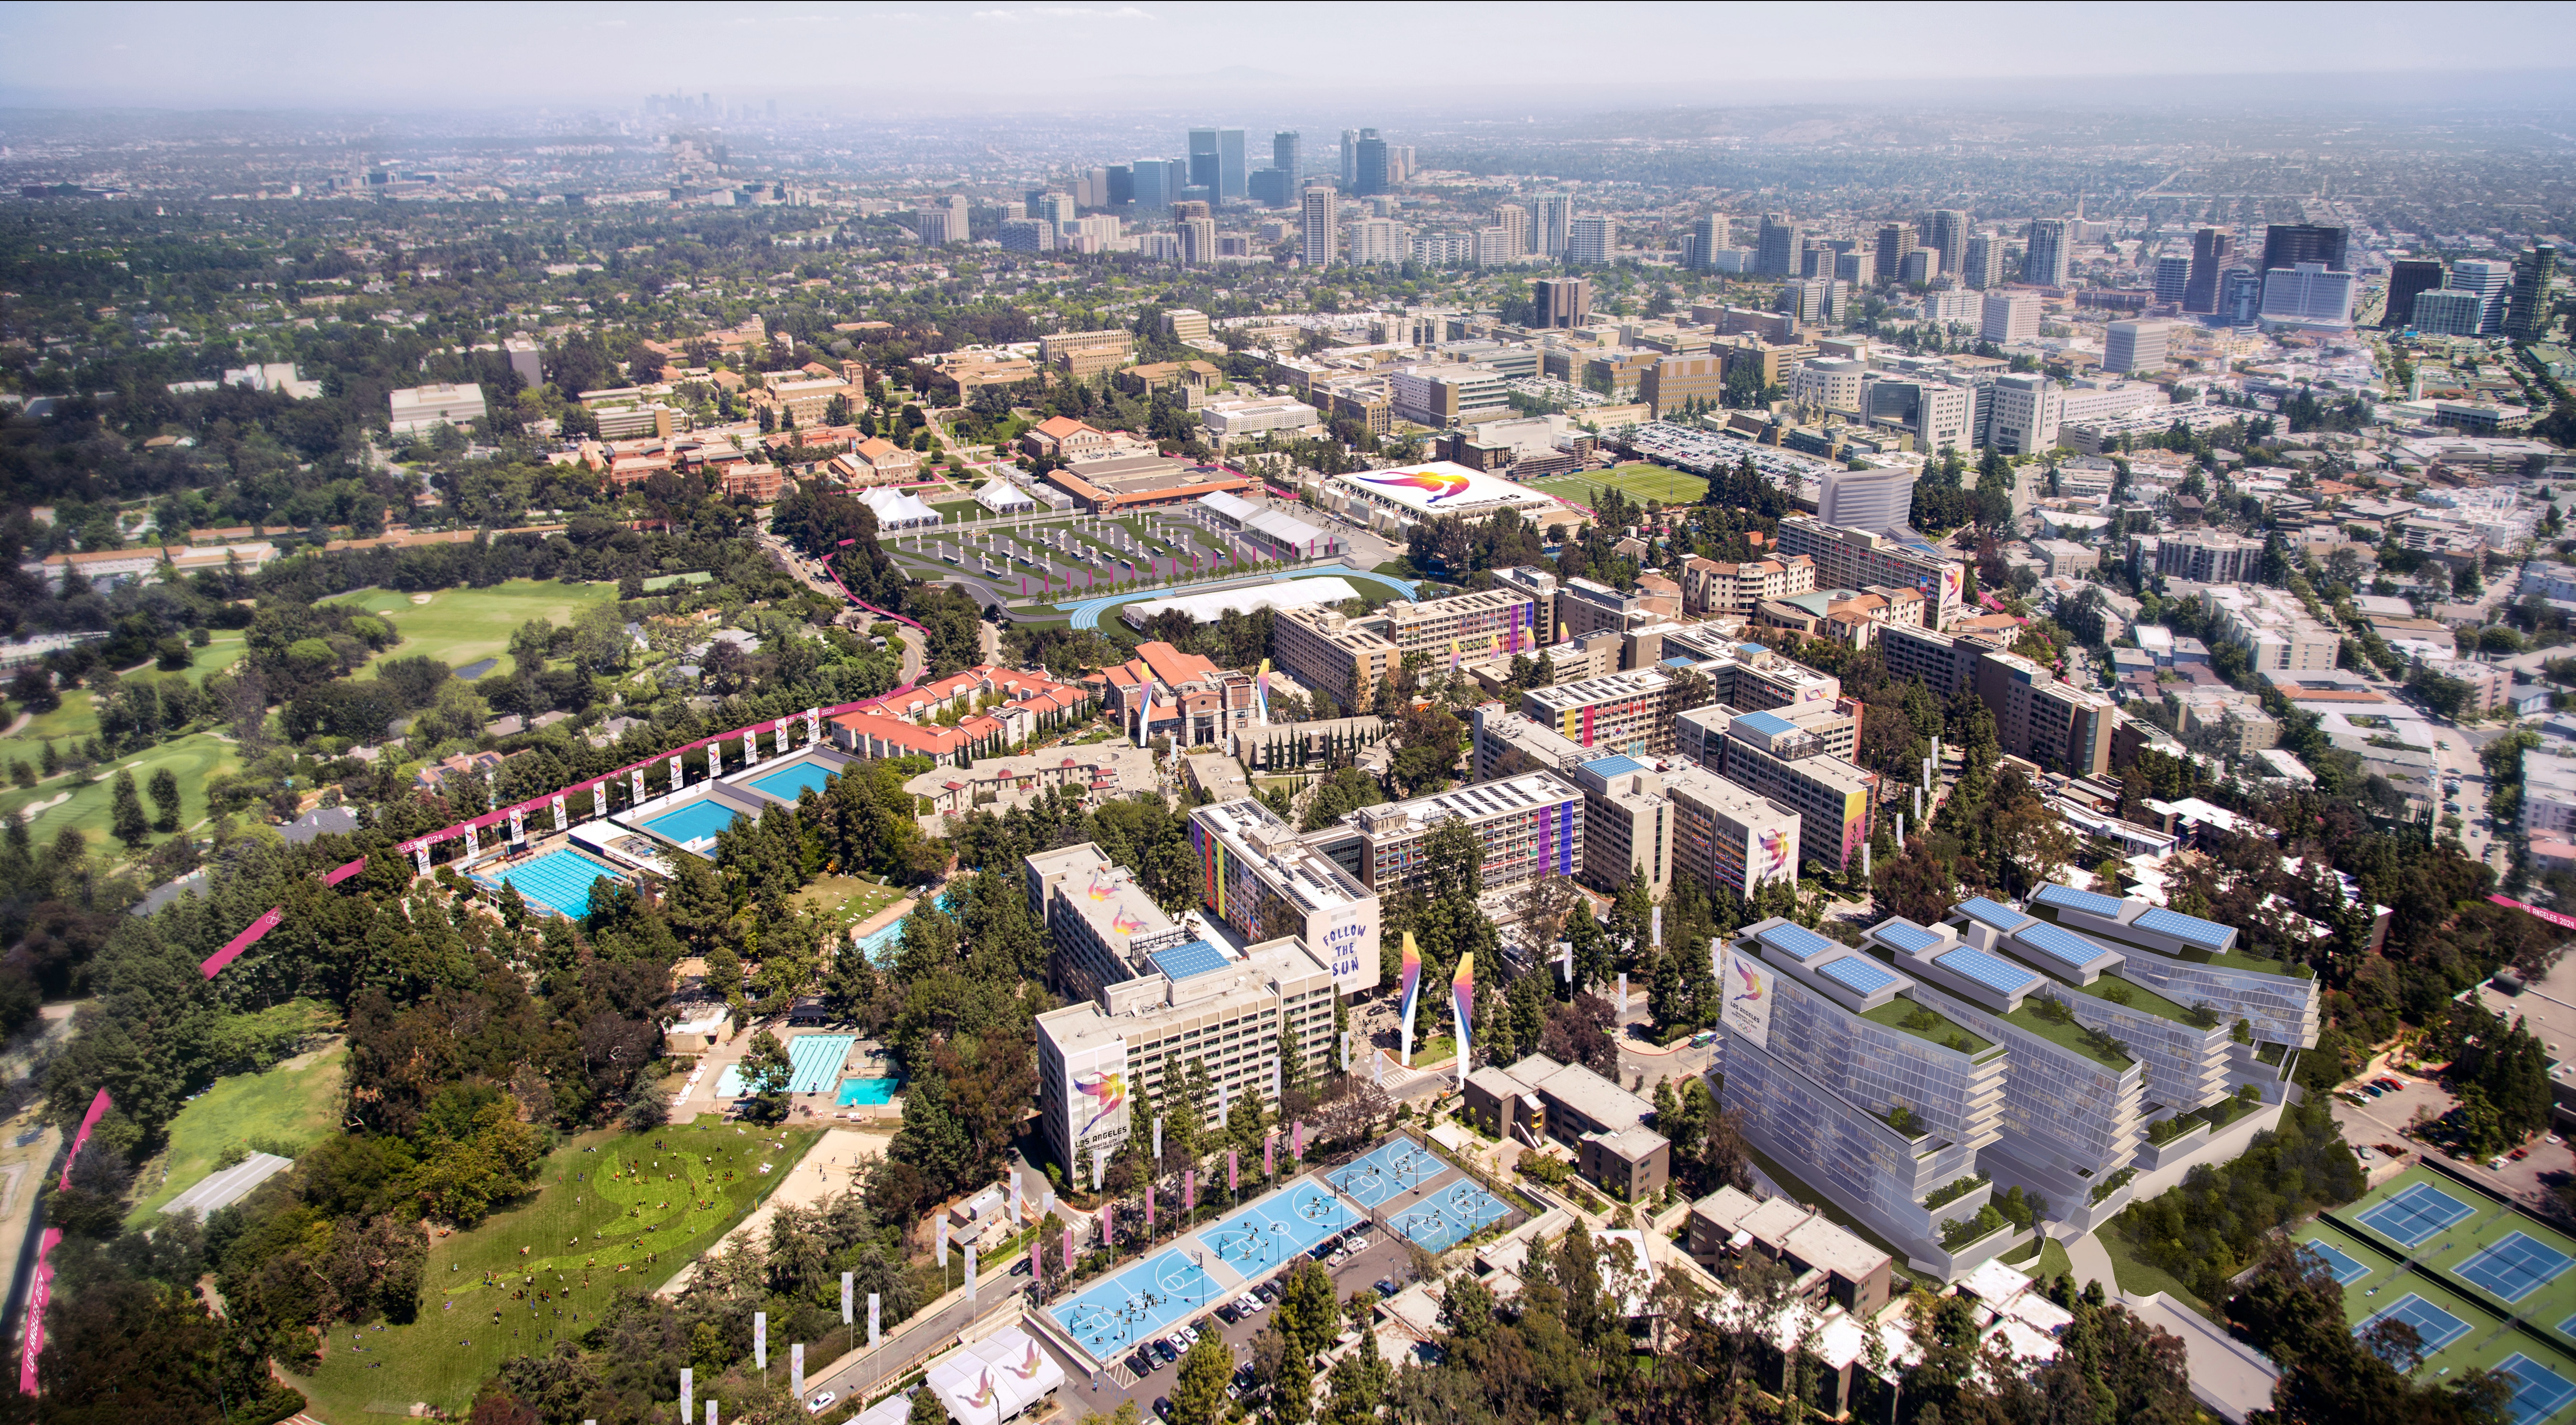 aerial_view_of_the_ucla_campus_34131363982_o.jpg